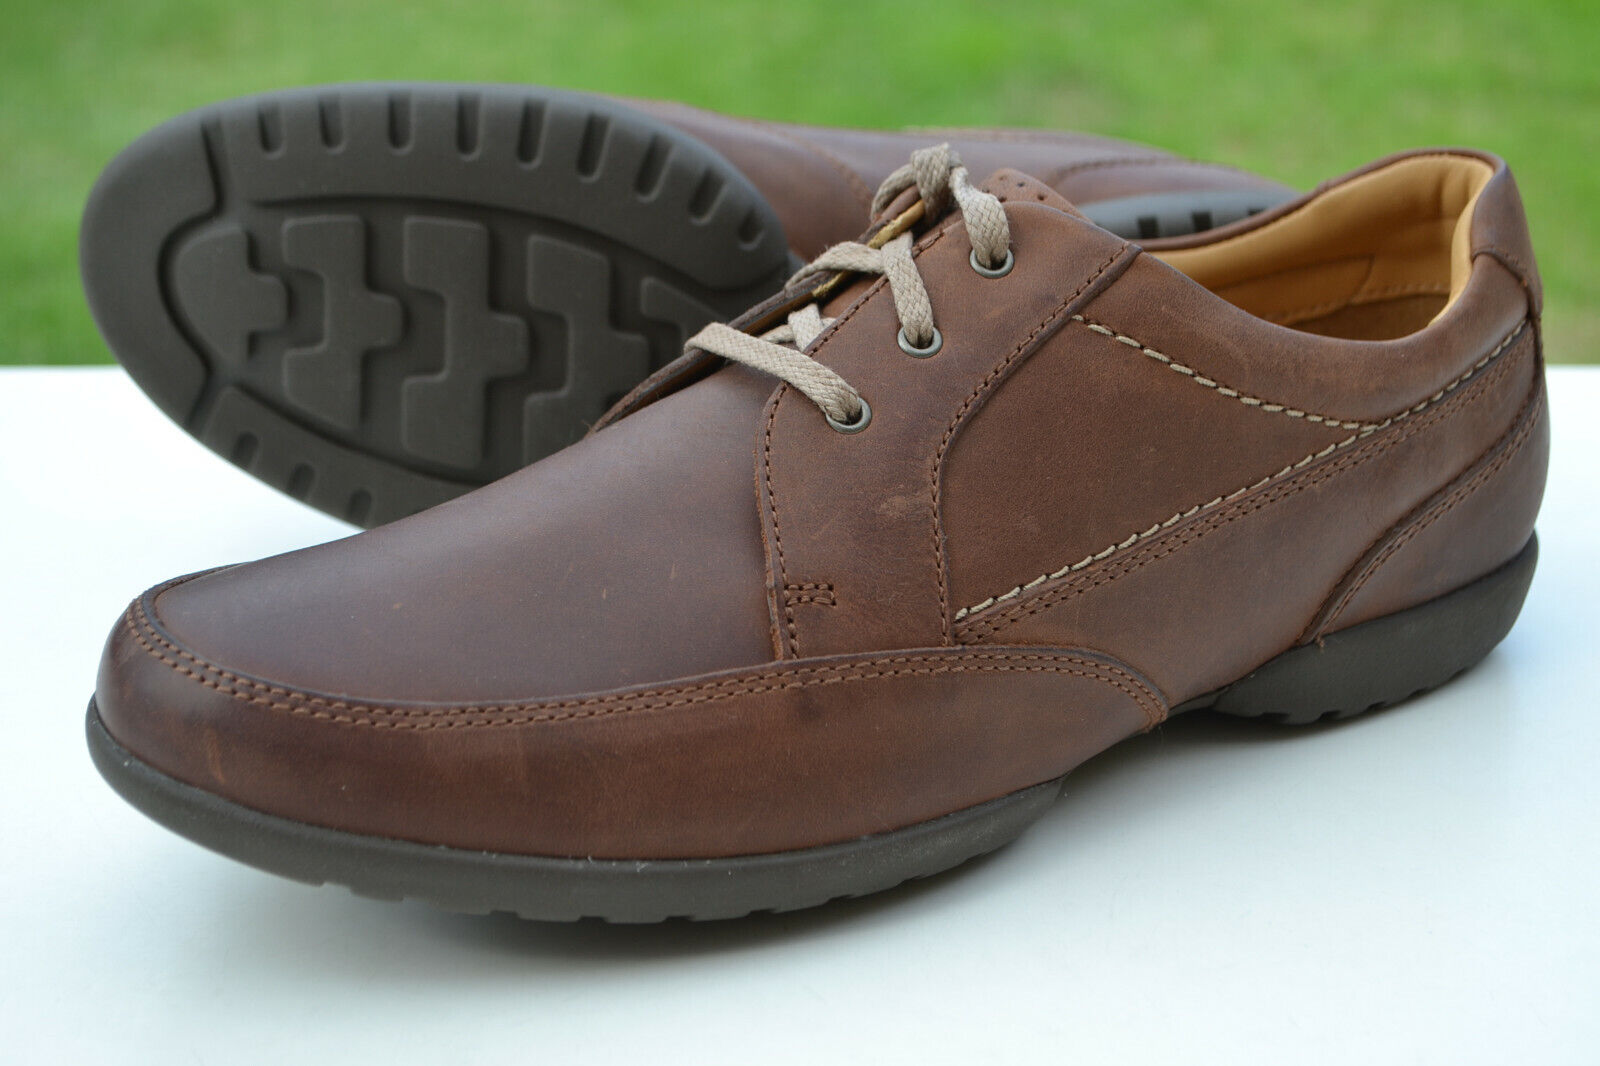 Clarks BNIB Mens Casual Shoes RECLINE OUT Tan Leather UK 7 H / 41 Wide Fit